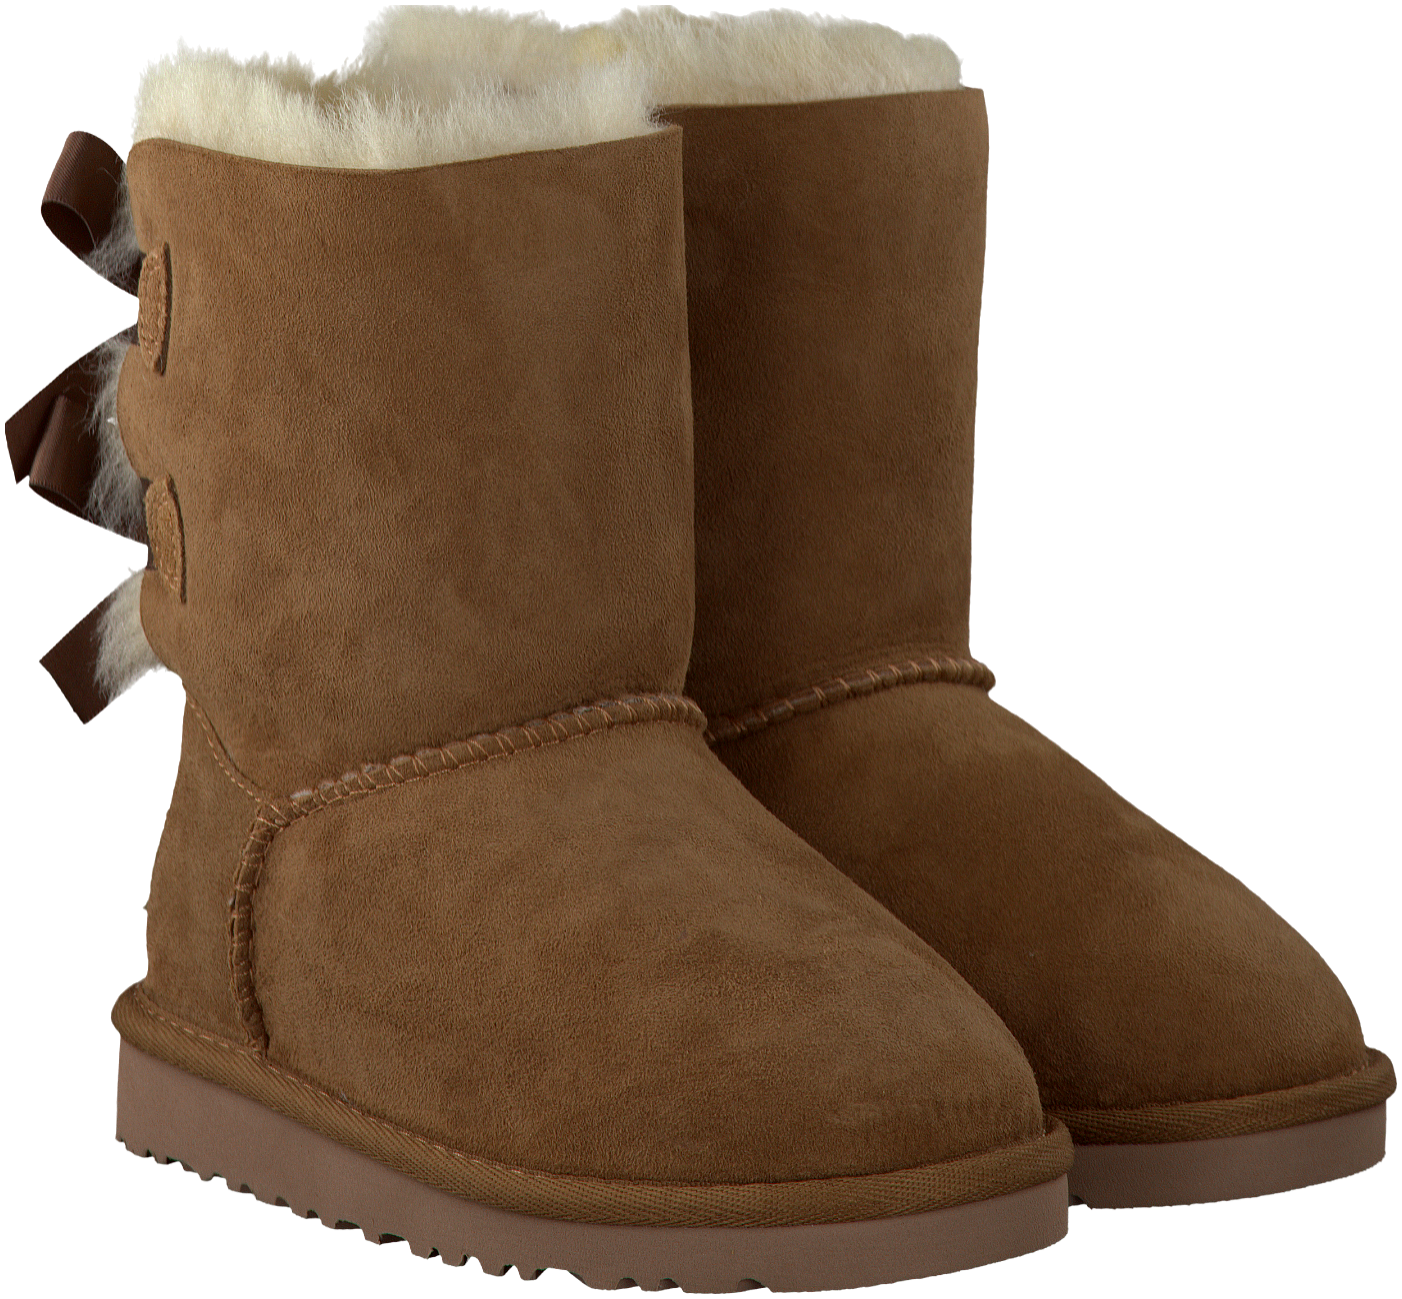 Ugg Boots PNG - 81106